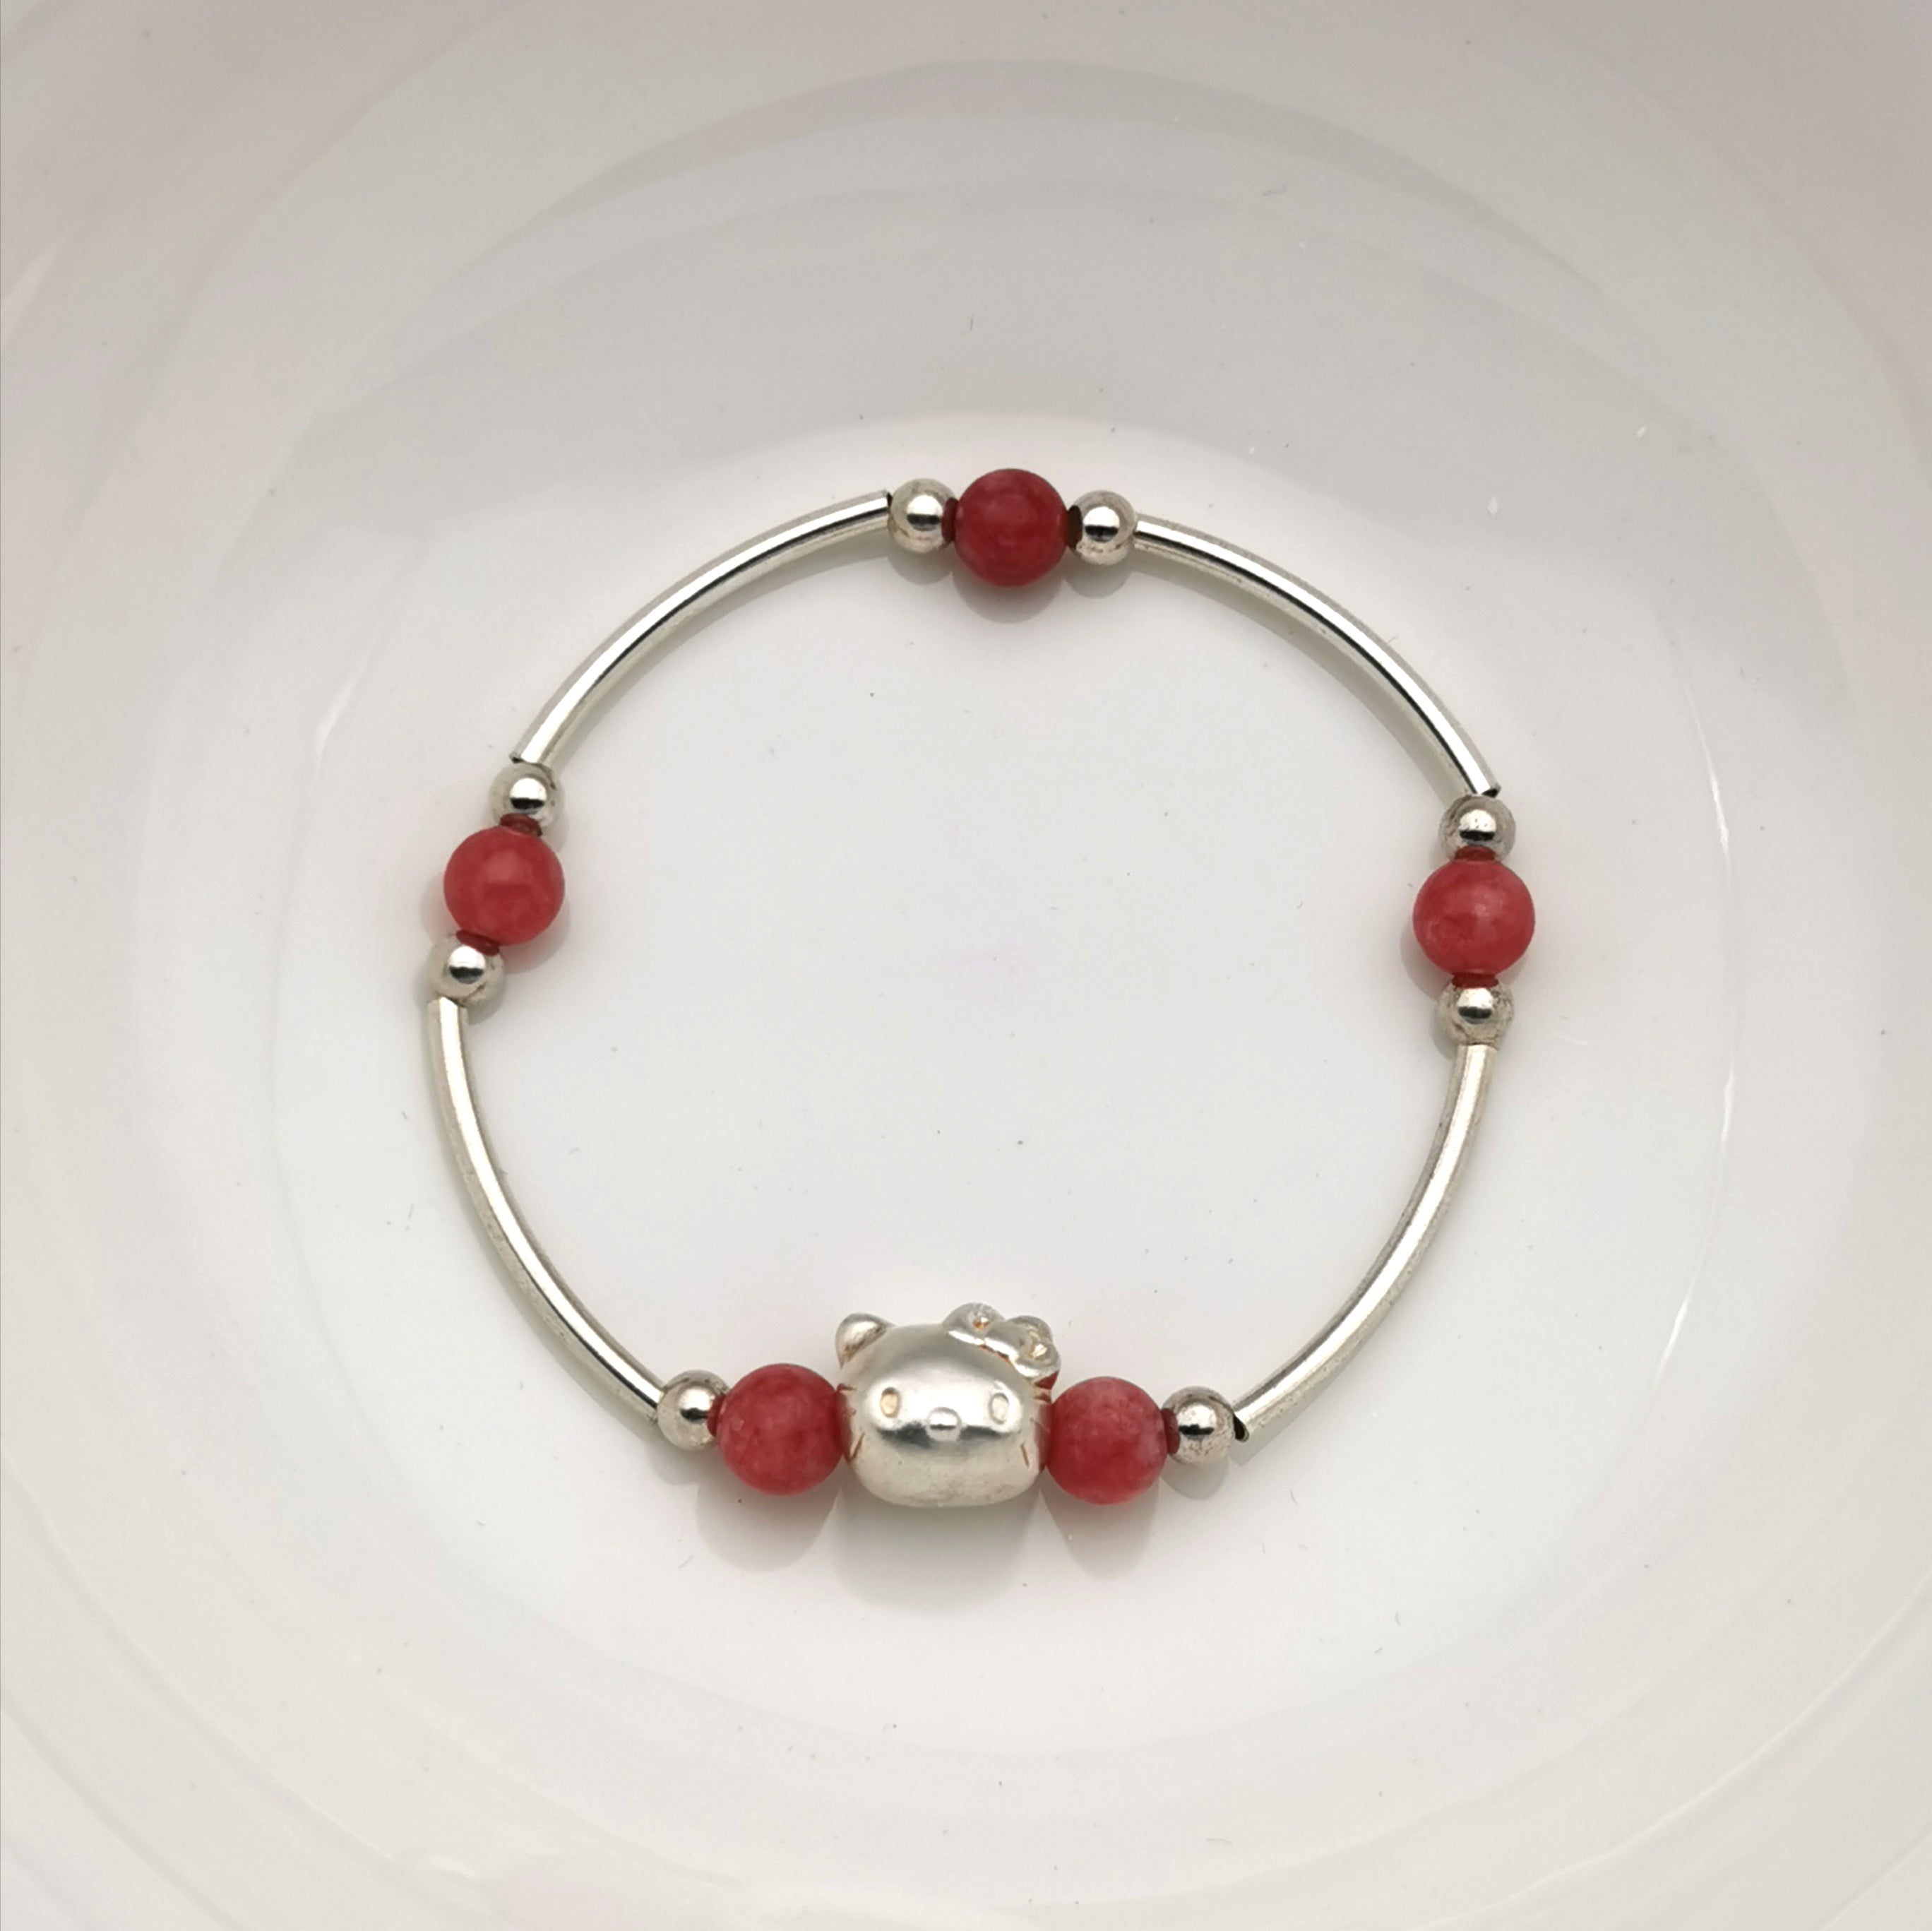 Handmade cute 3D s999 silver with Rhodochrosite stretch brelect